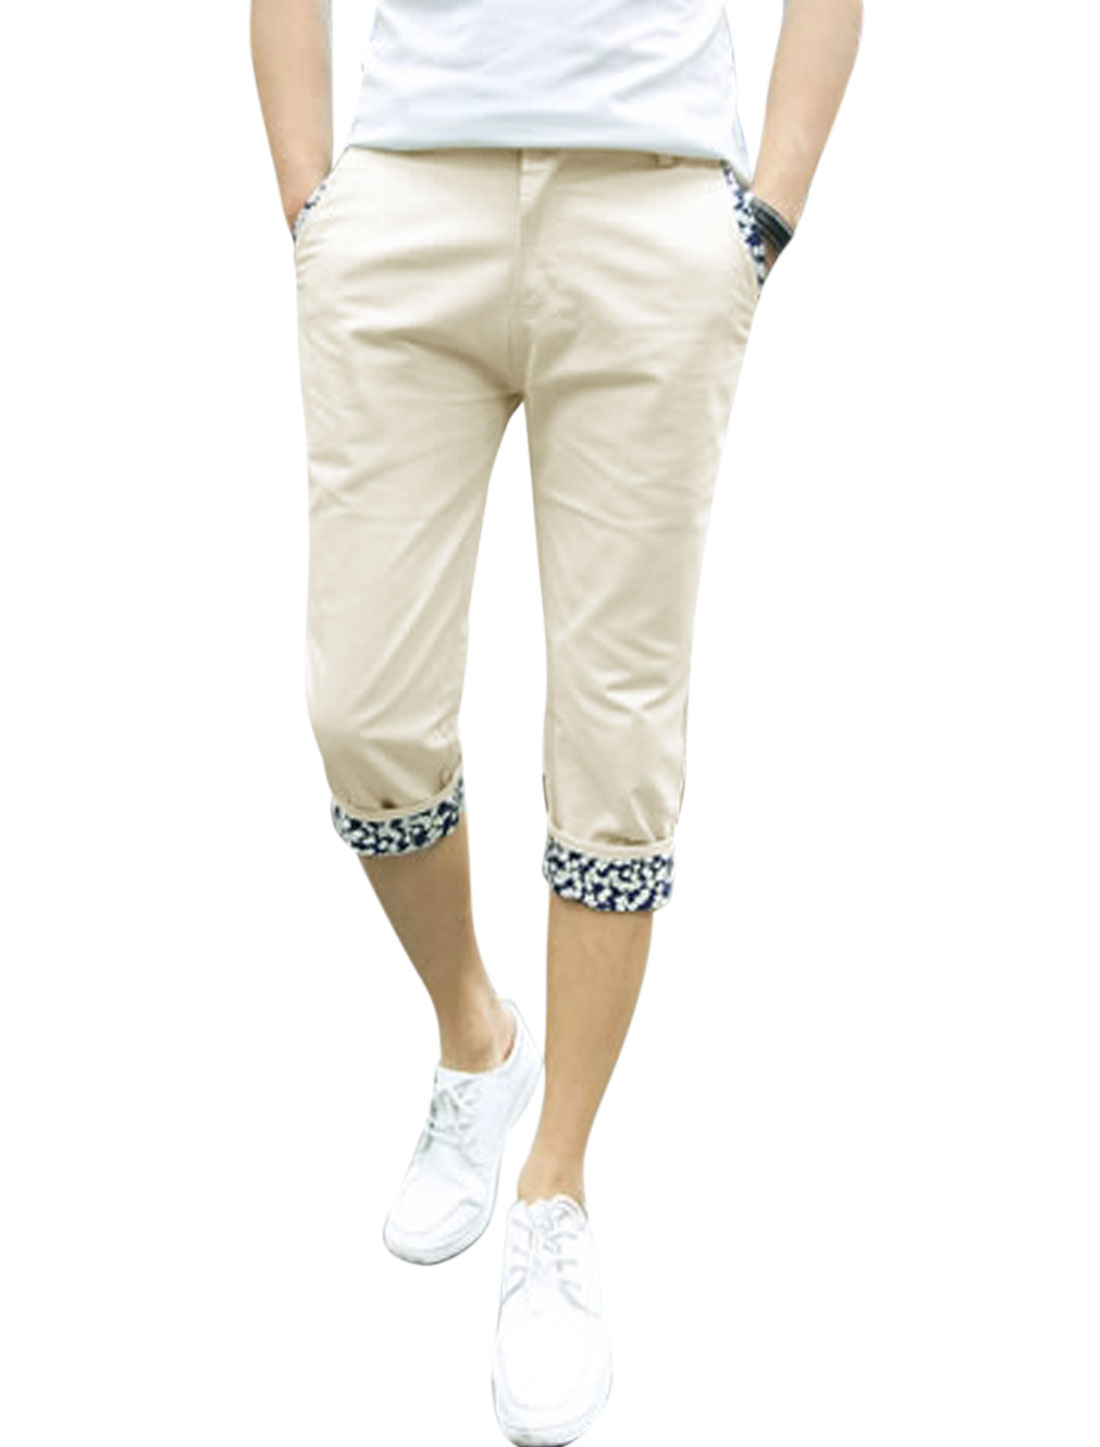 Men Mid Rise Zip Fly Pockets Leisure Summer Capris Pants Beige W32